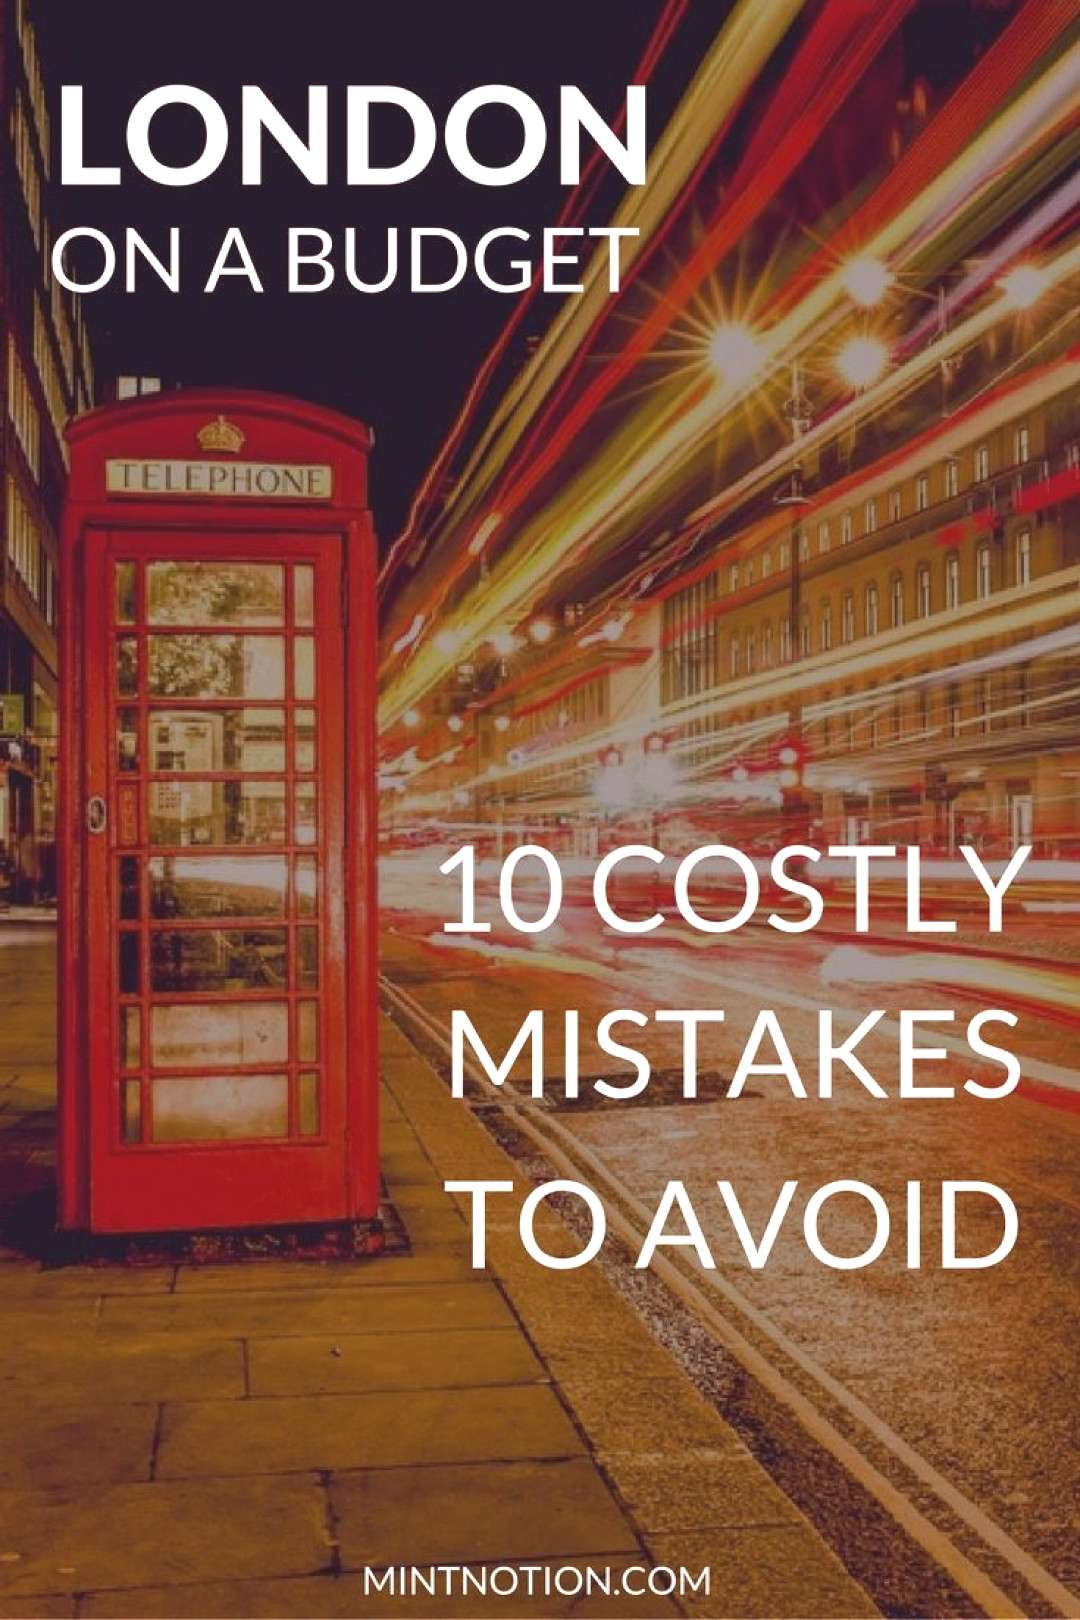 London On A Budget: 10 Costly Mistakes To Avoid -  It's no secret that London is an expensive cit